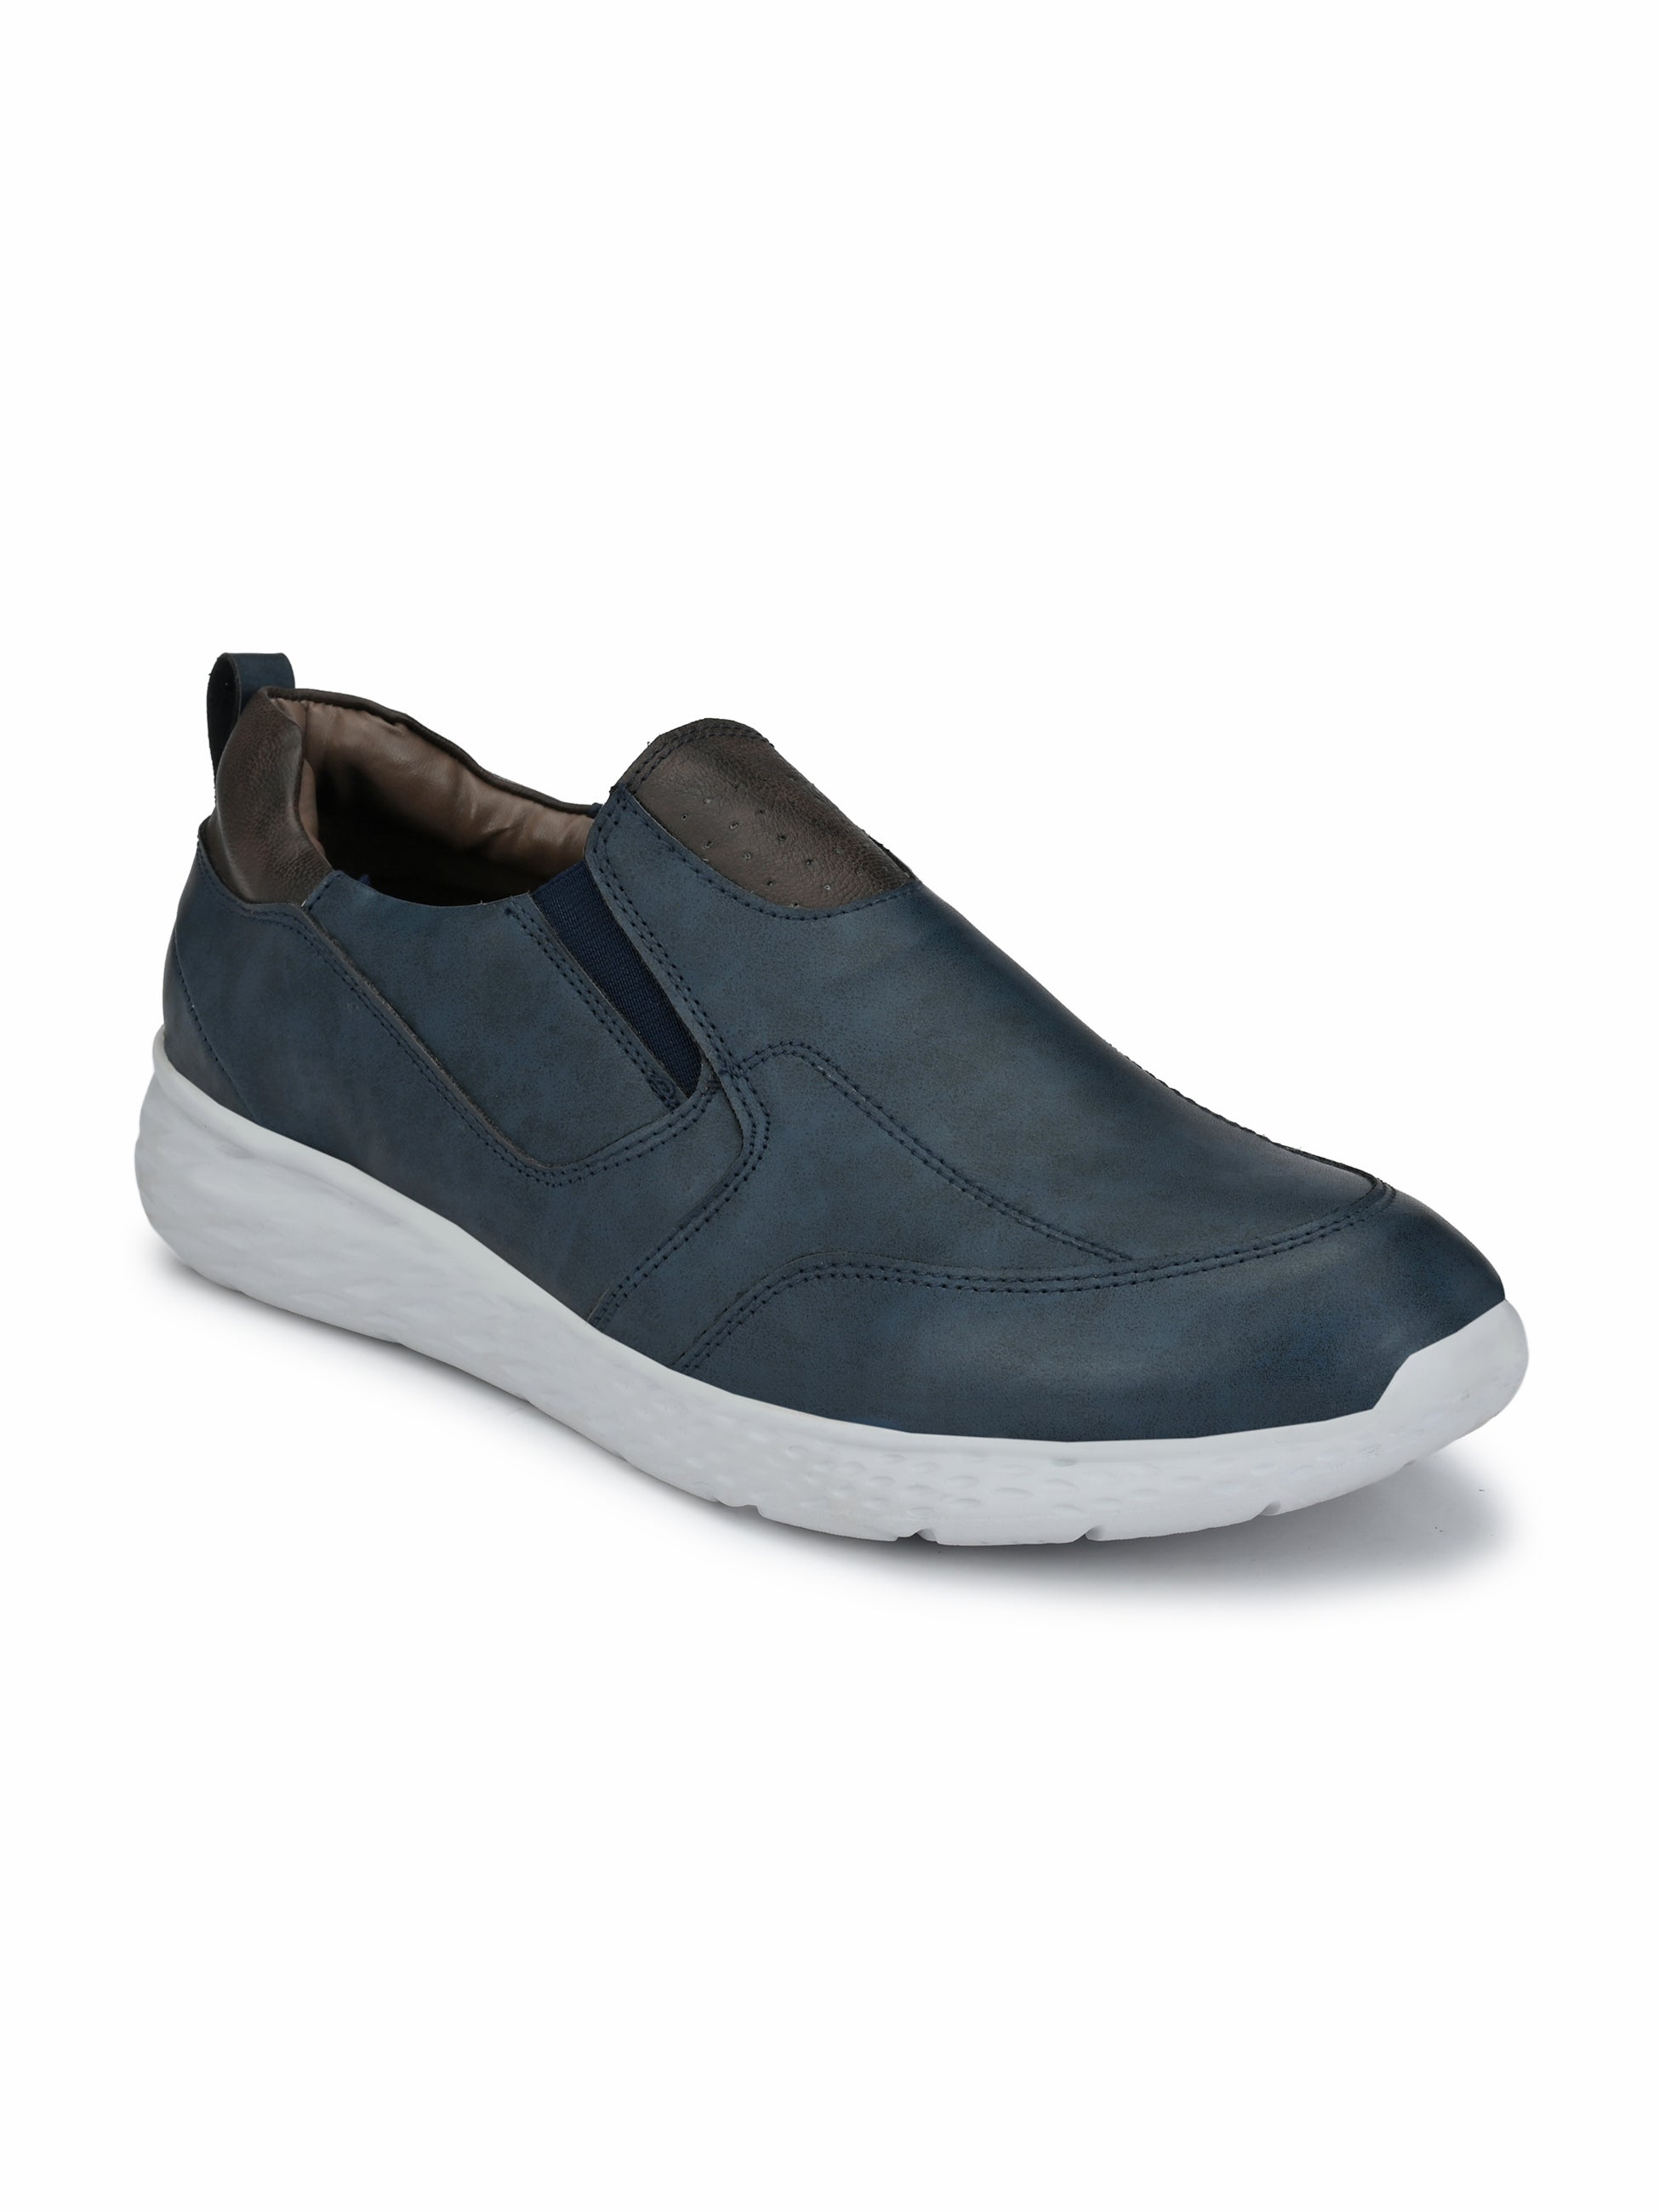 Bichrome Bold Slip on Sneakers - shoegaro